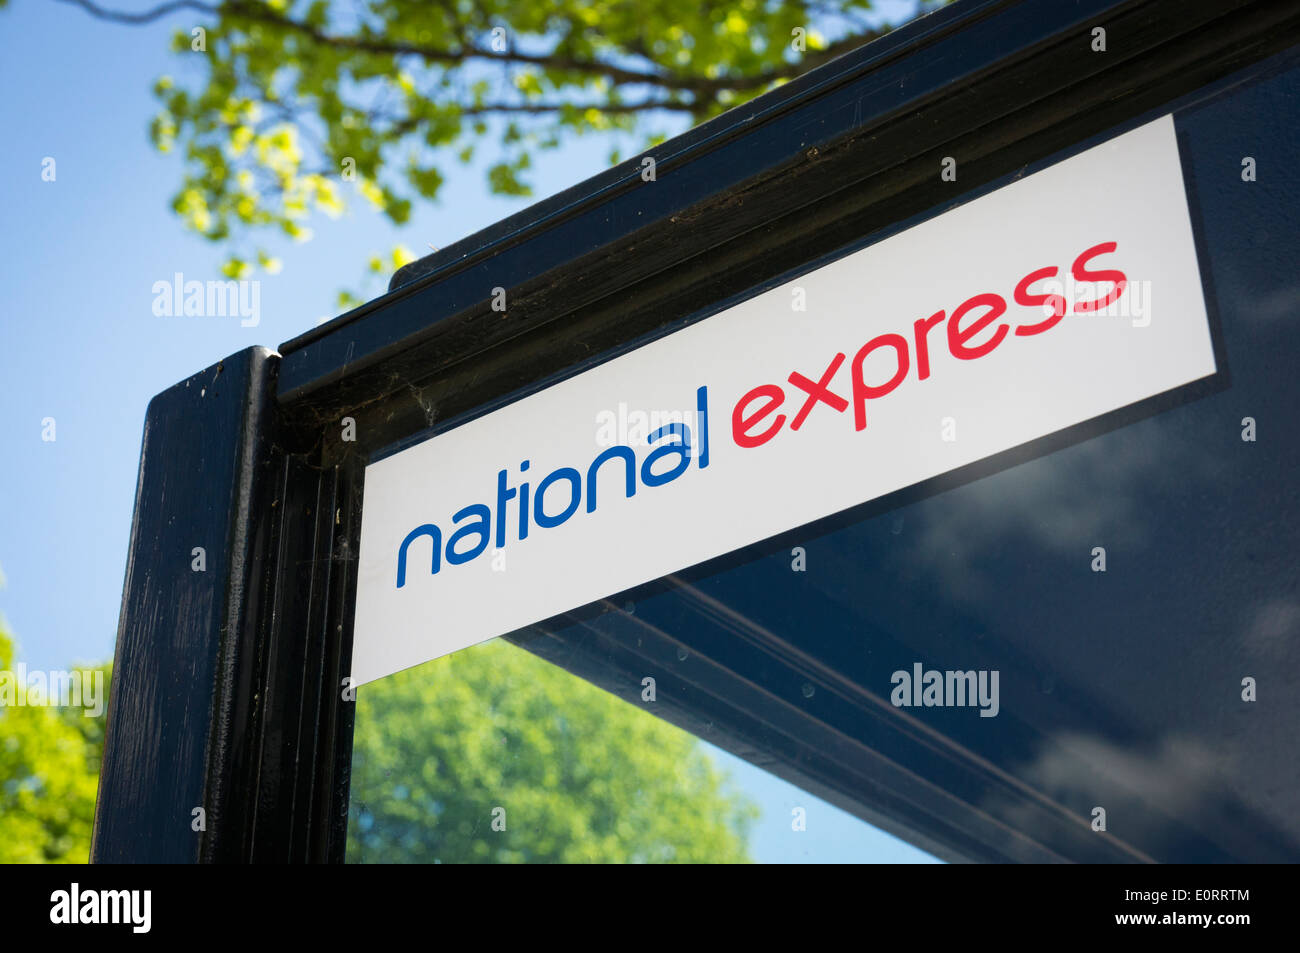 National Express coaches logo, UK - Stock Image